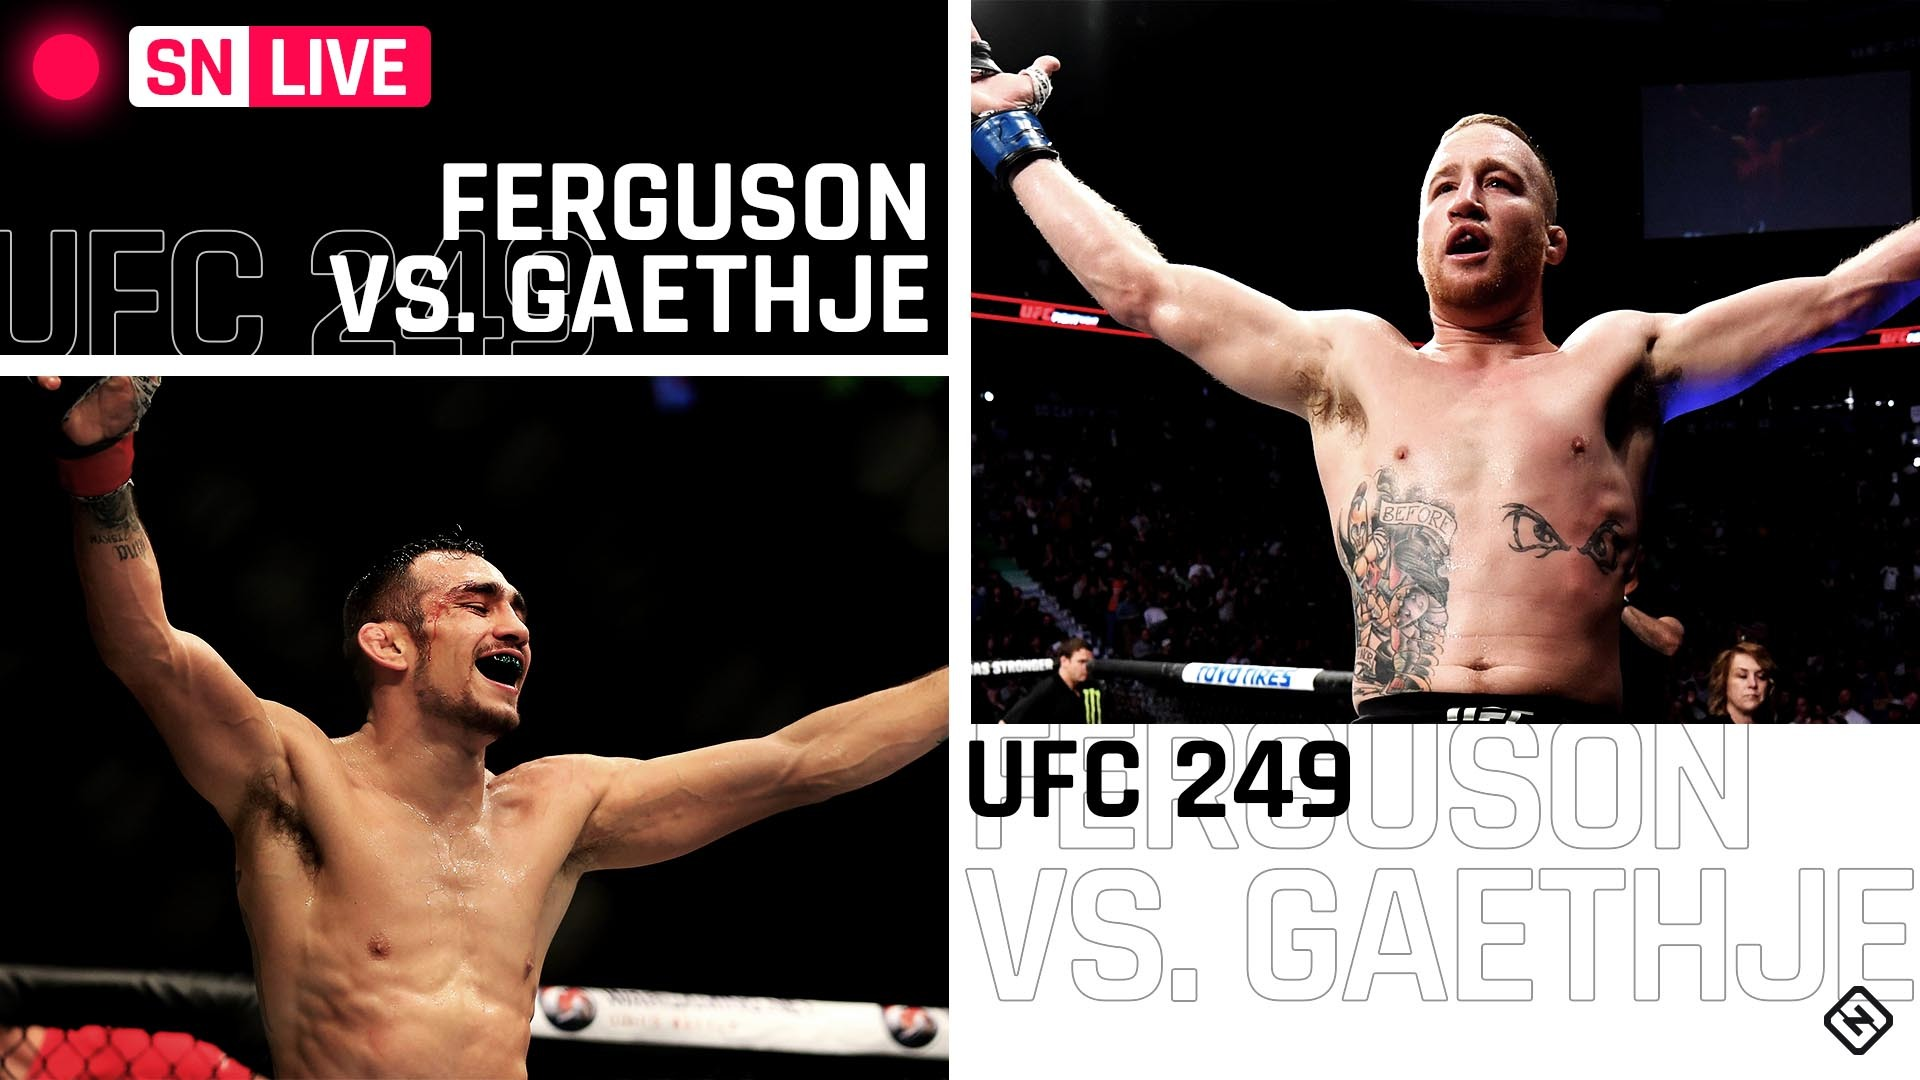 UFC 249 live updates, results, highlights from Tony Ferguson vs. Justin Gaethje & fight card